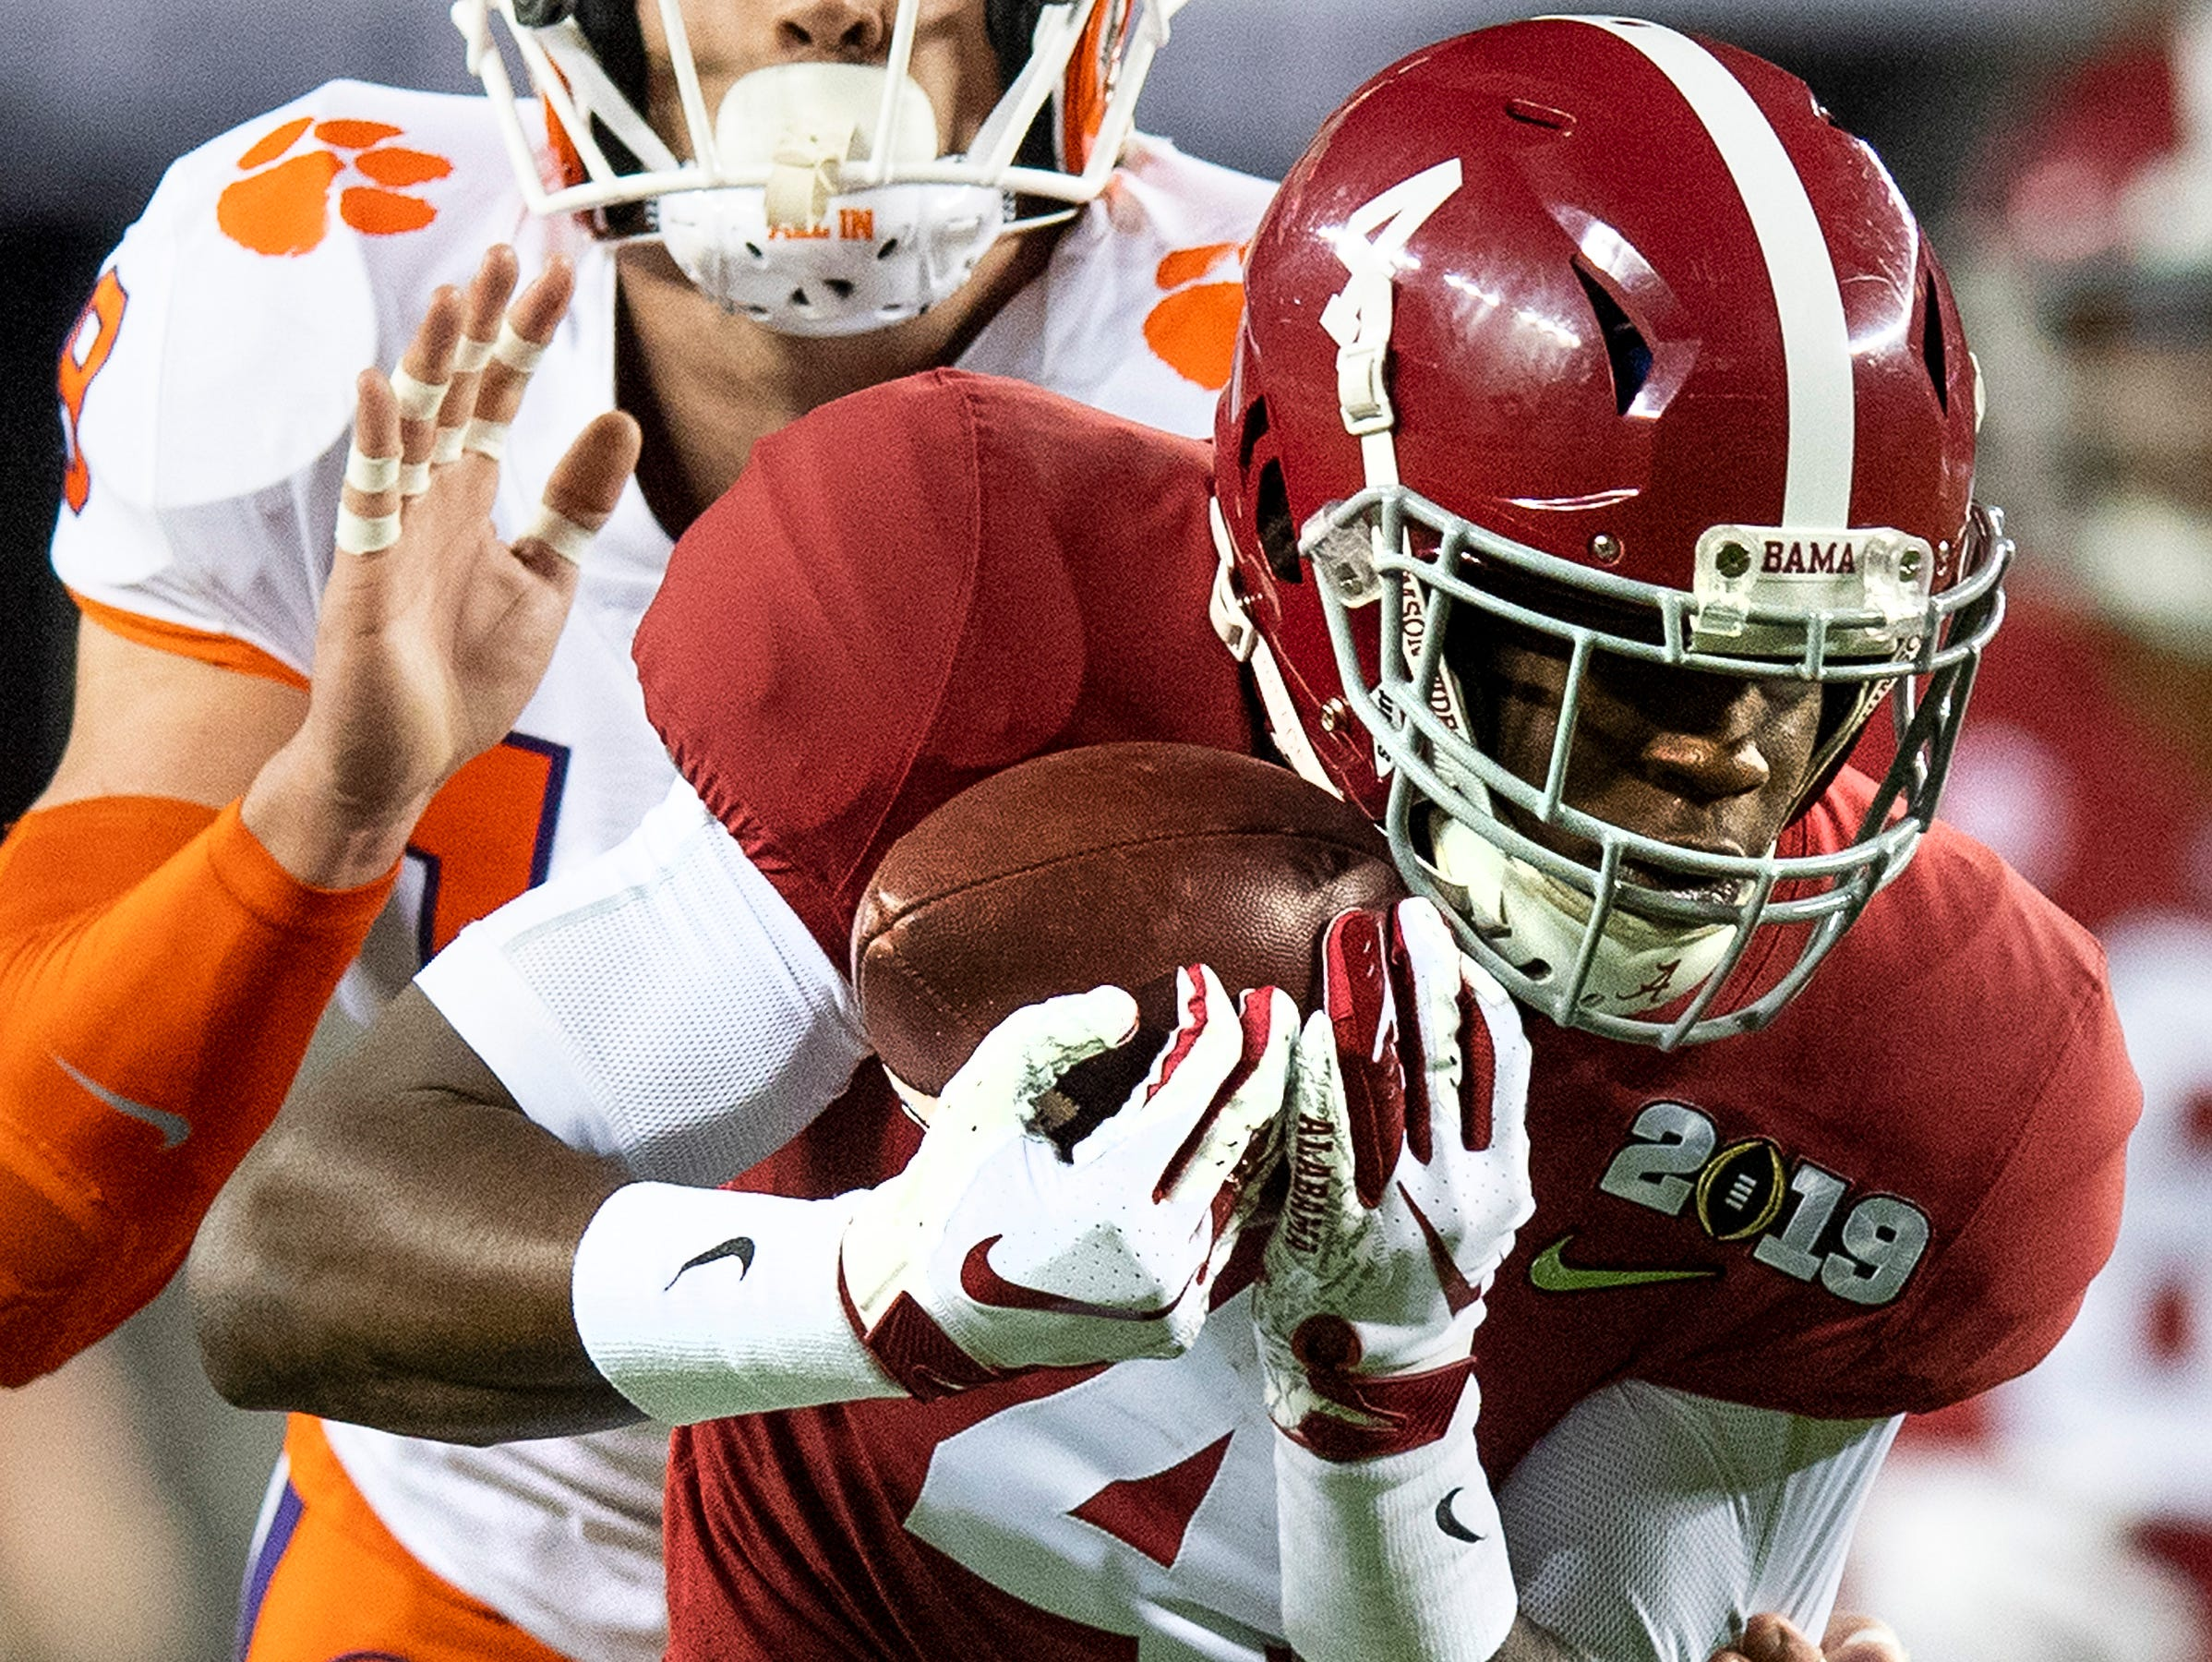 Alabama wide receiver Jerry Jeudy (4) catches a touchdown p[ass against Clemson safety Tanner Muse (19) In first half action of the College Football Playoff National Championship game at Levi's Stadium in Santa Clara, Ca., on Monday January 7, 2019.